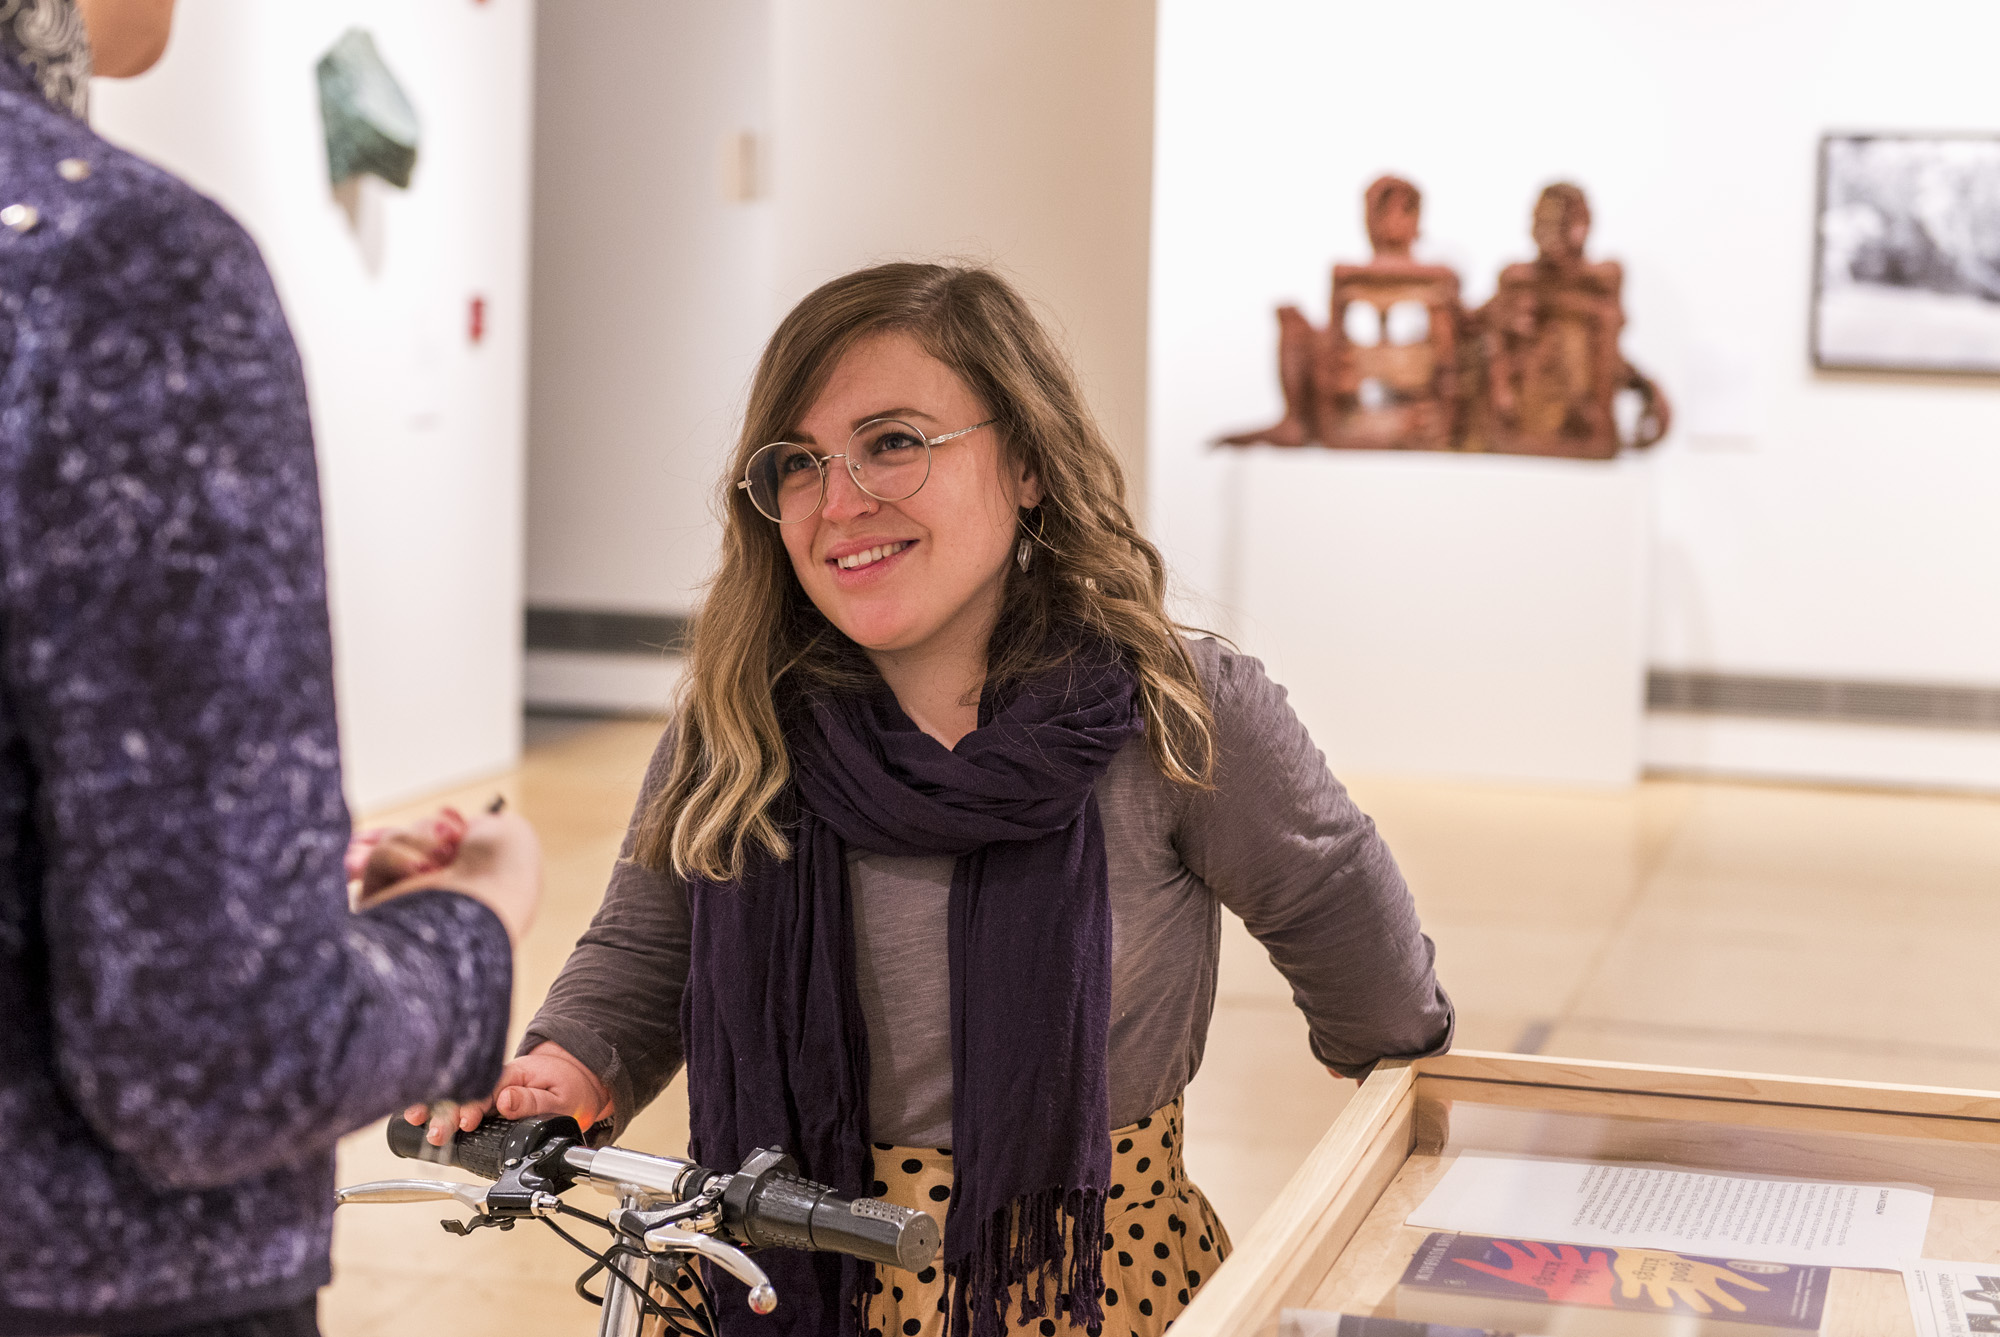 Image: Bri Beck seen in the galleries, wearing a grey sweater and dark scarf; the handlebars of her motorized scooter are visible; Courtney Graham's arm edges into the frame from the left as the two of them are in coversation. Photo by Ryan Edmund.